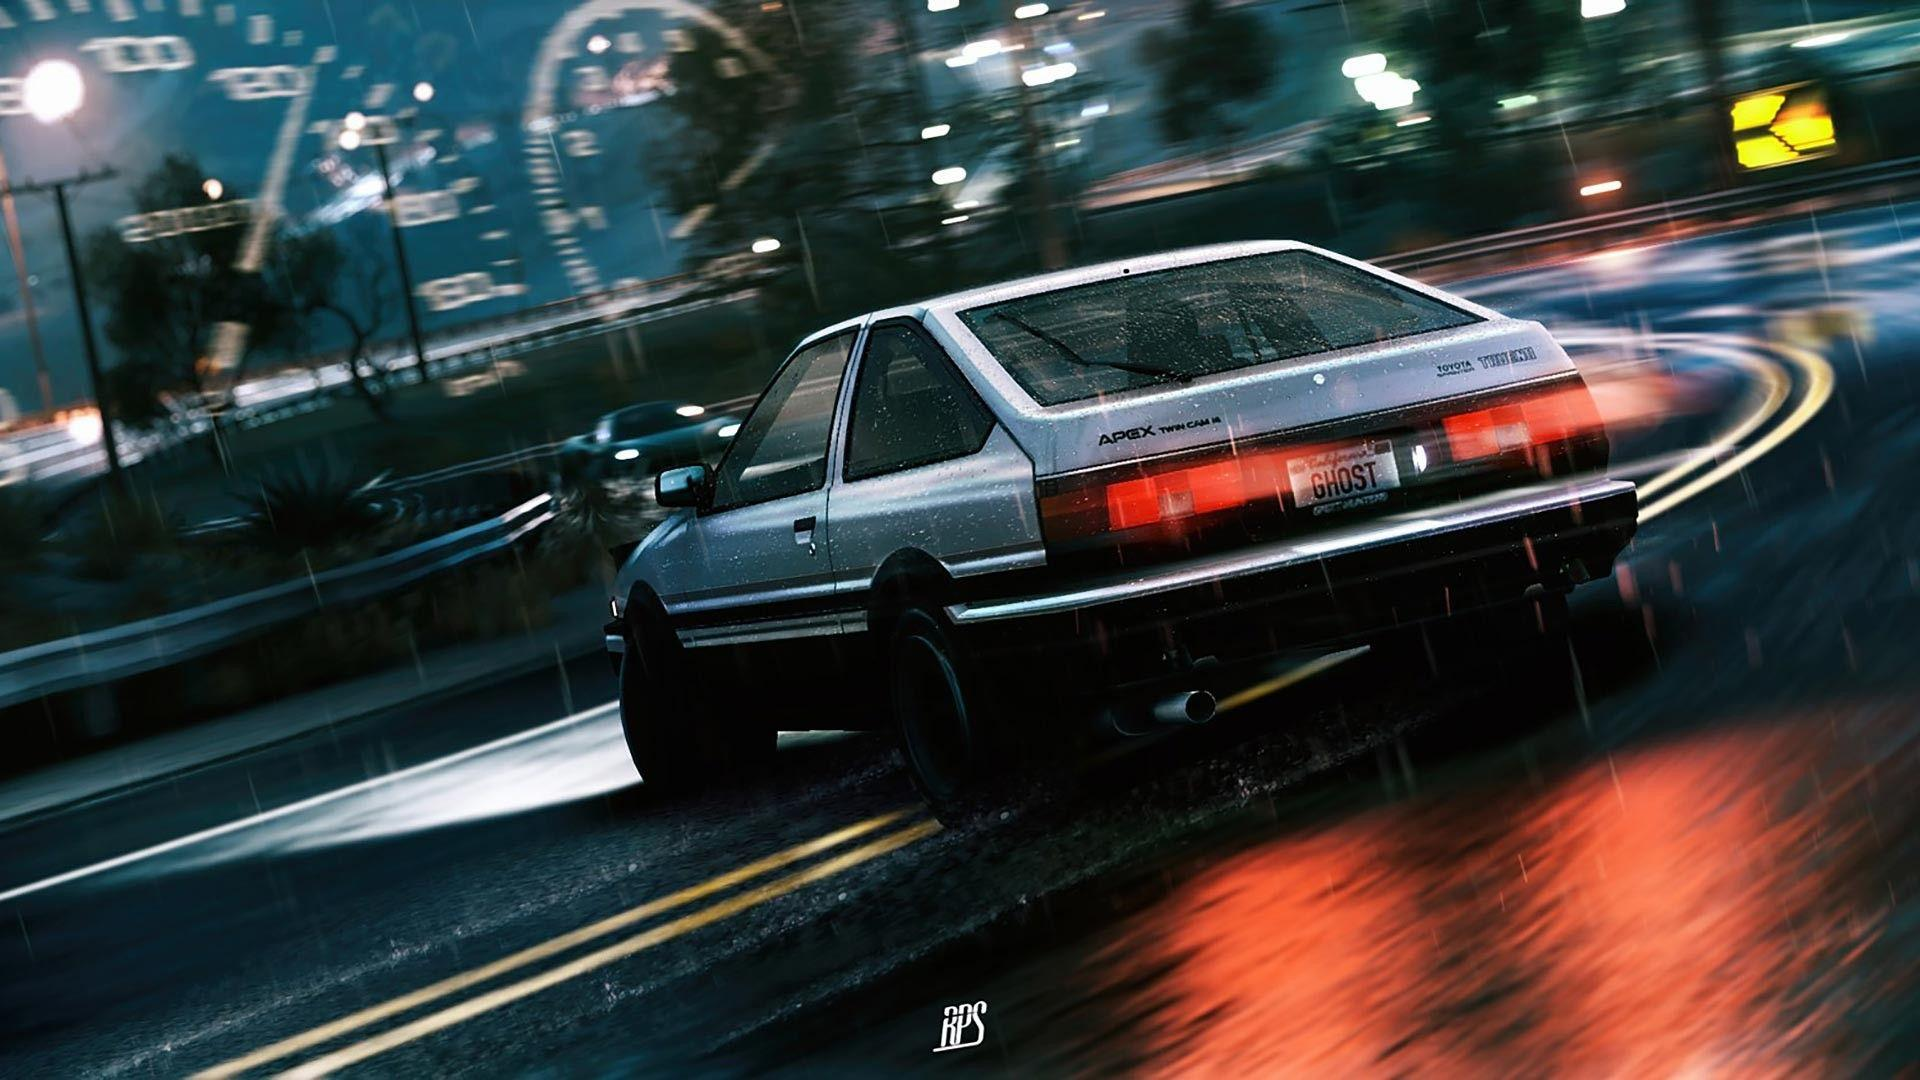 Initial D Hd Wallpapers Wallpaper Cave